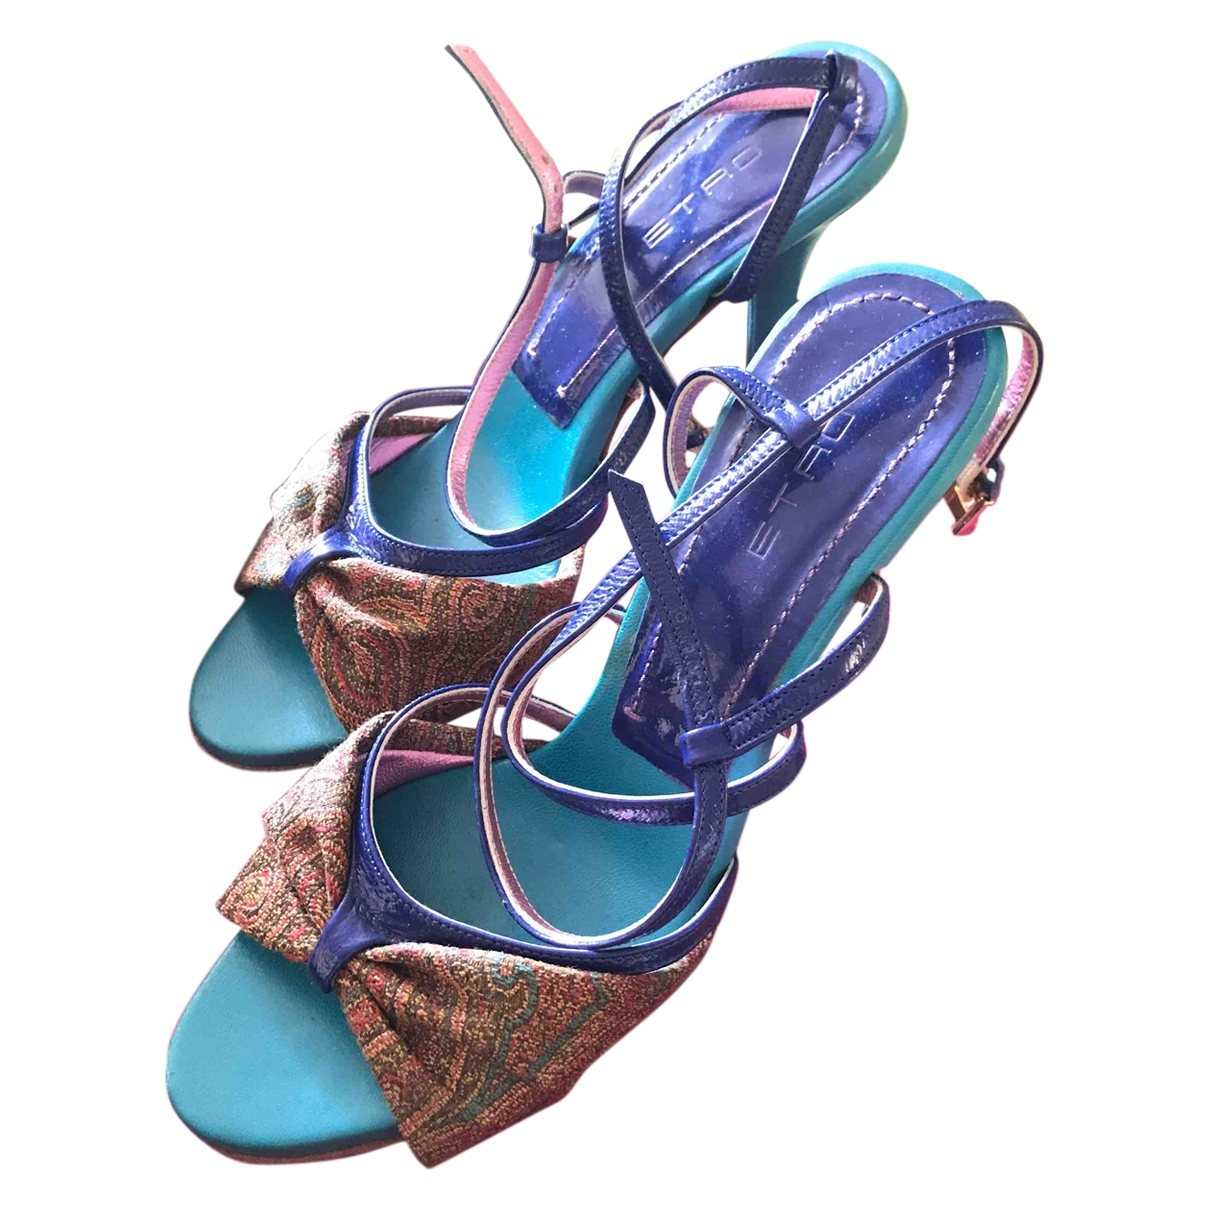 Etro \N Turquoise Leather Sandals for Women 37.5 EU